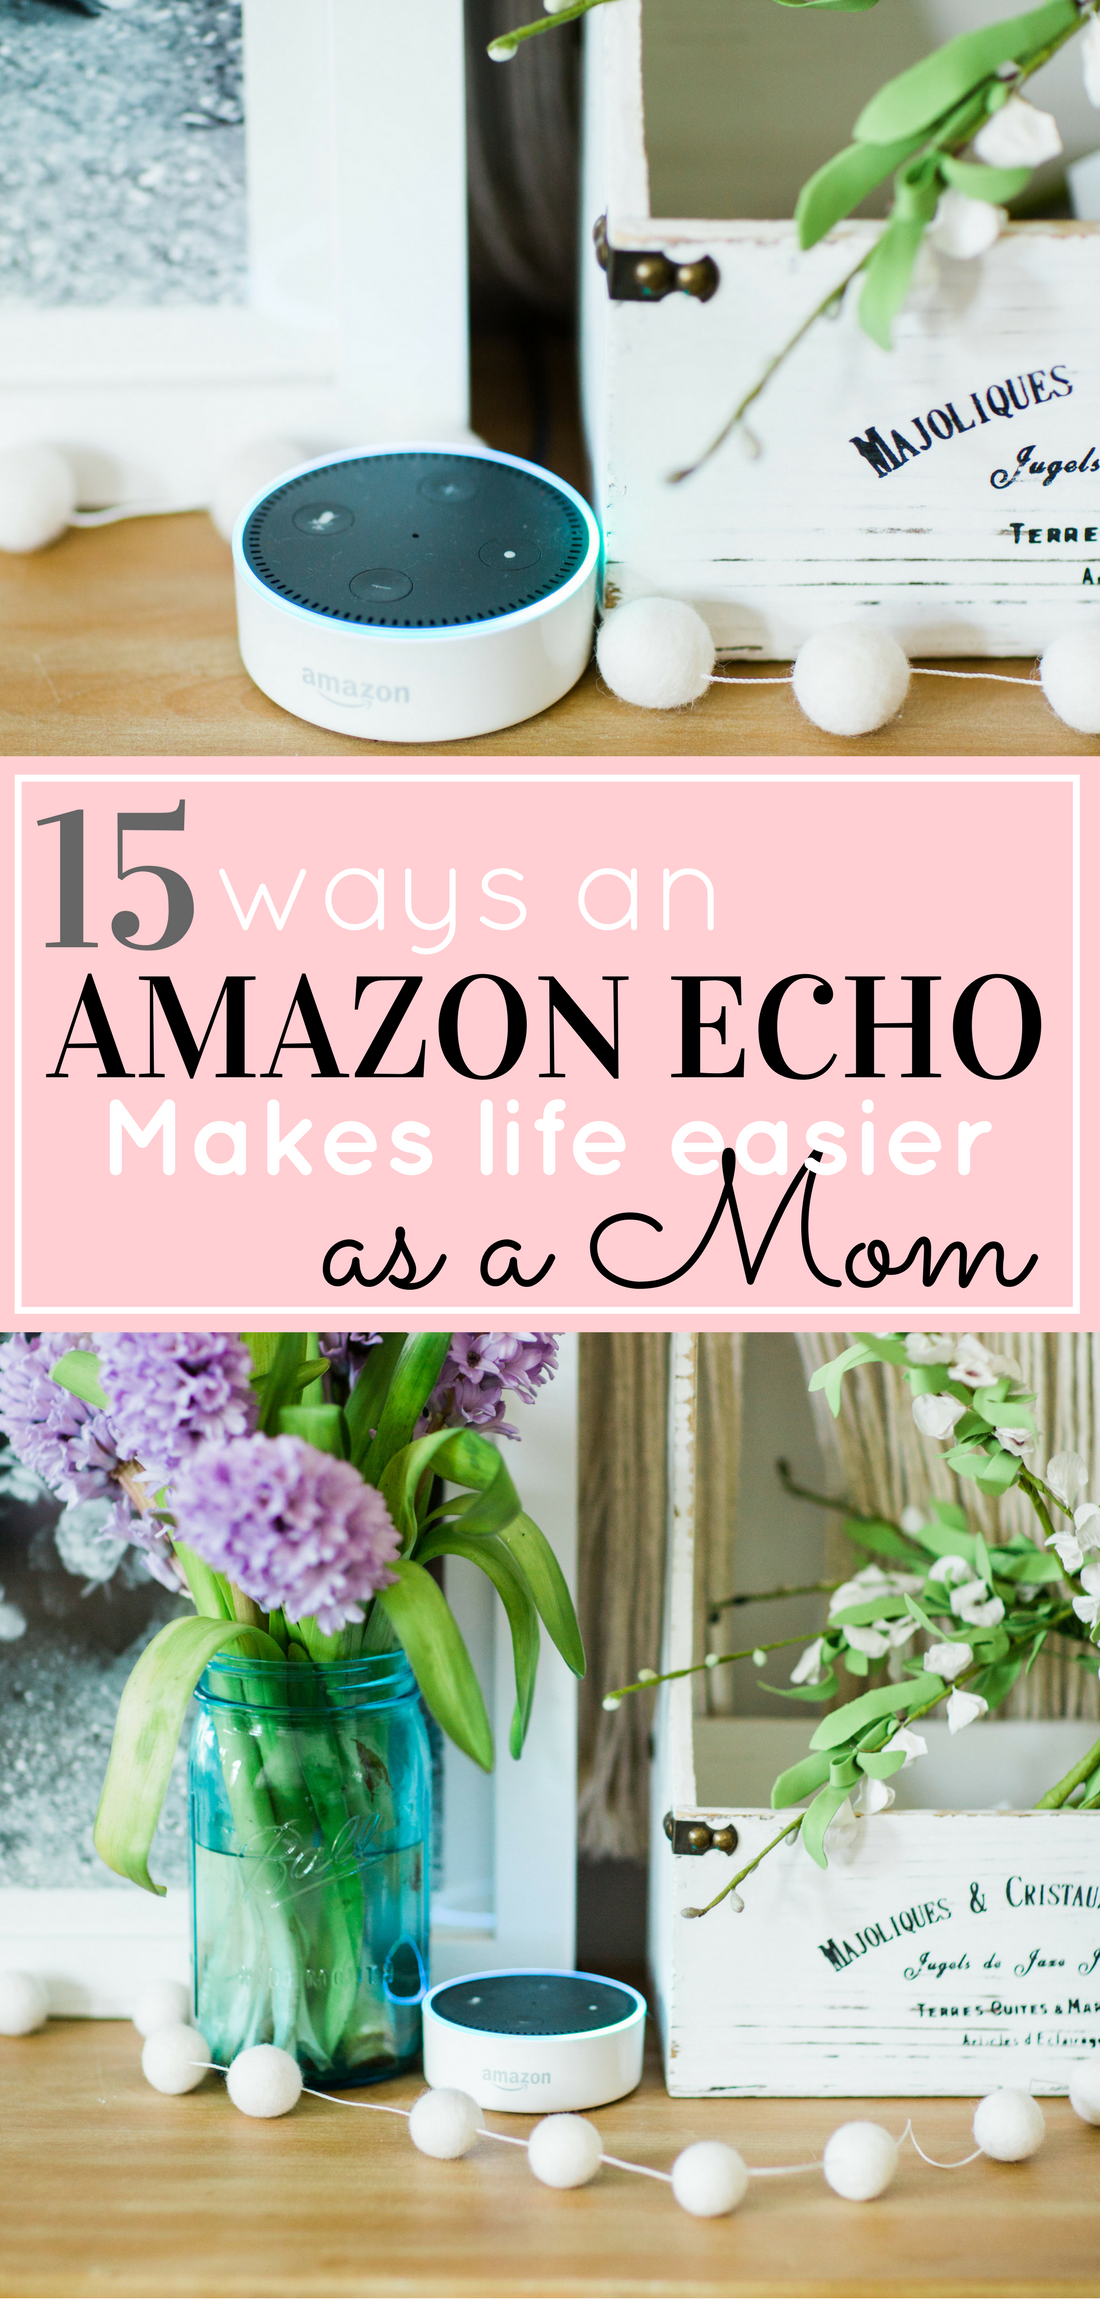 Not sure how to make Alexa work for your family? We're sharing 15 surprising and amazing ways Amazon Echo makes your life easier as a mom, including a brilliant new baby hack and tons of fun for the kids. | glitterinc.com | @glitterinc